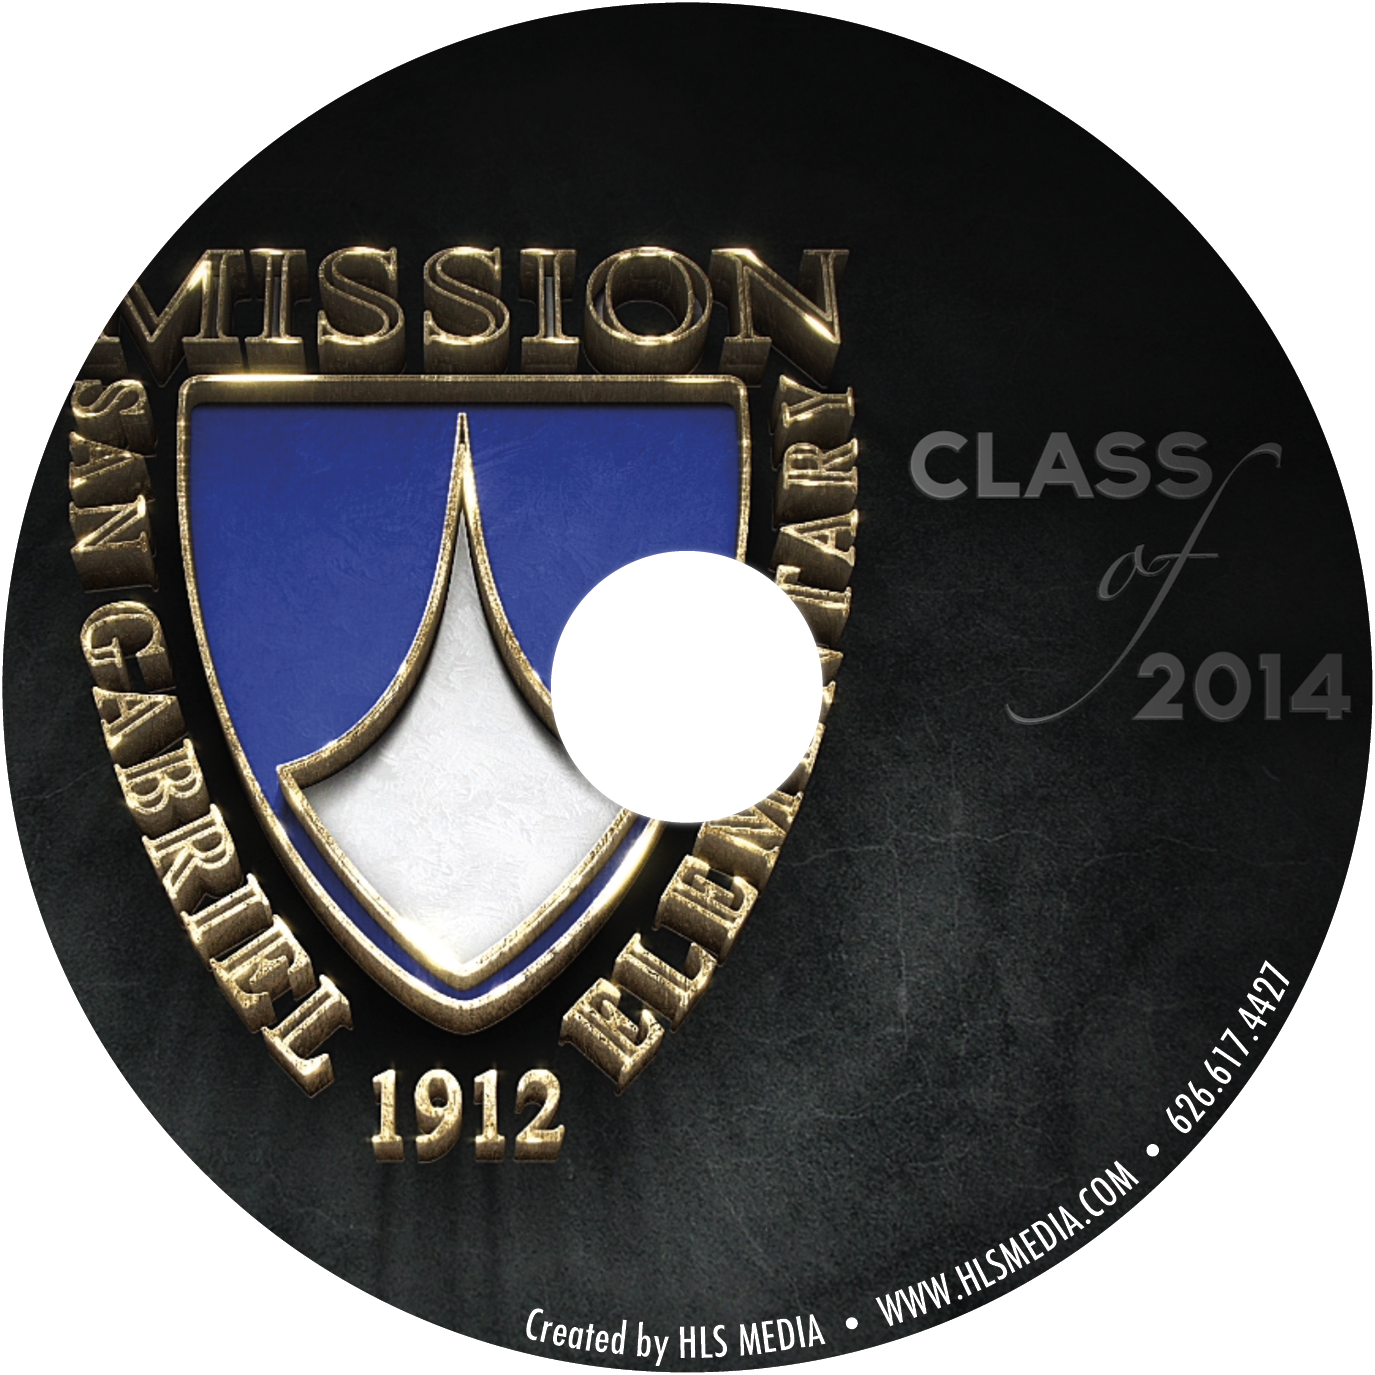 San Gabriel Mission Elementary Class of 2014 DVD